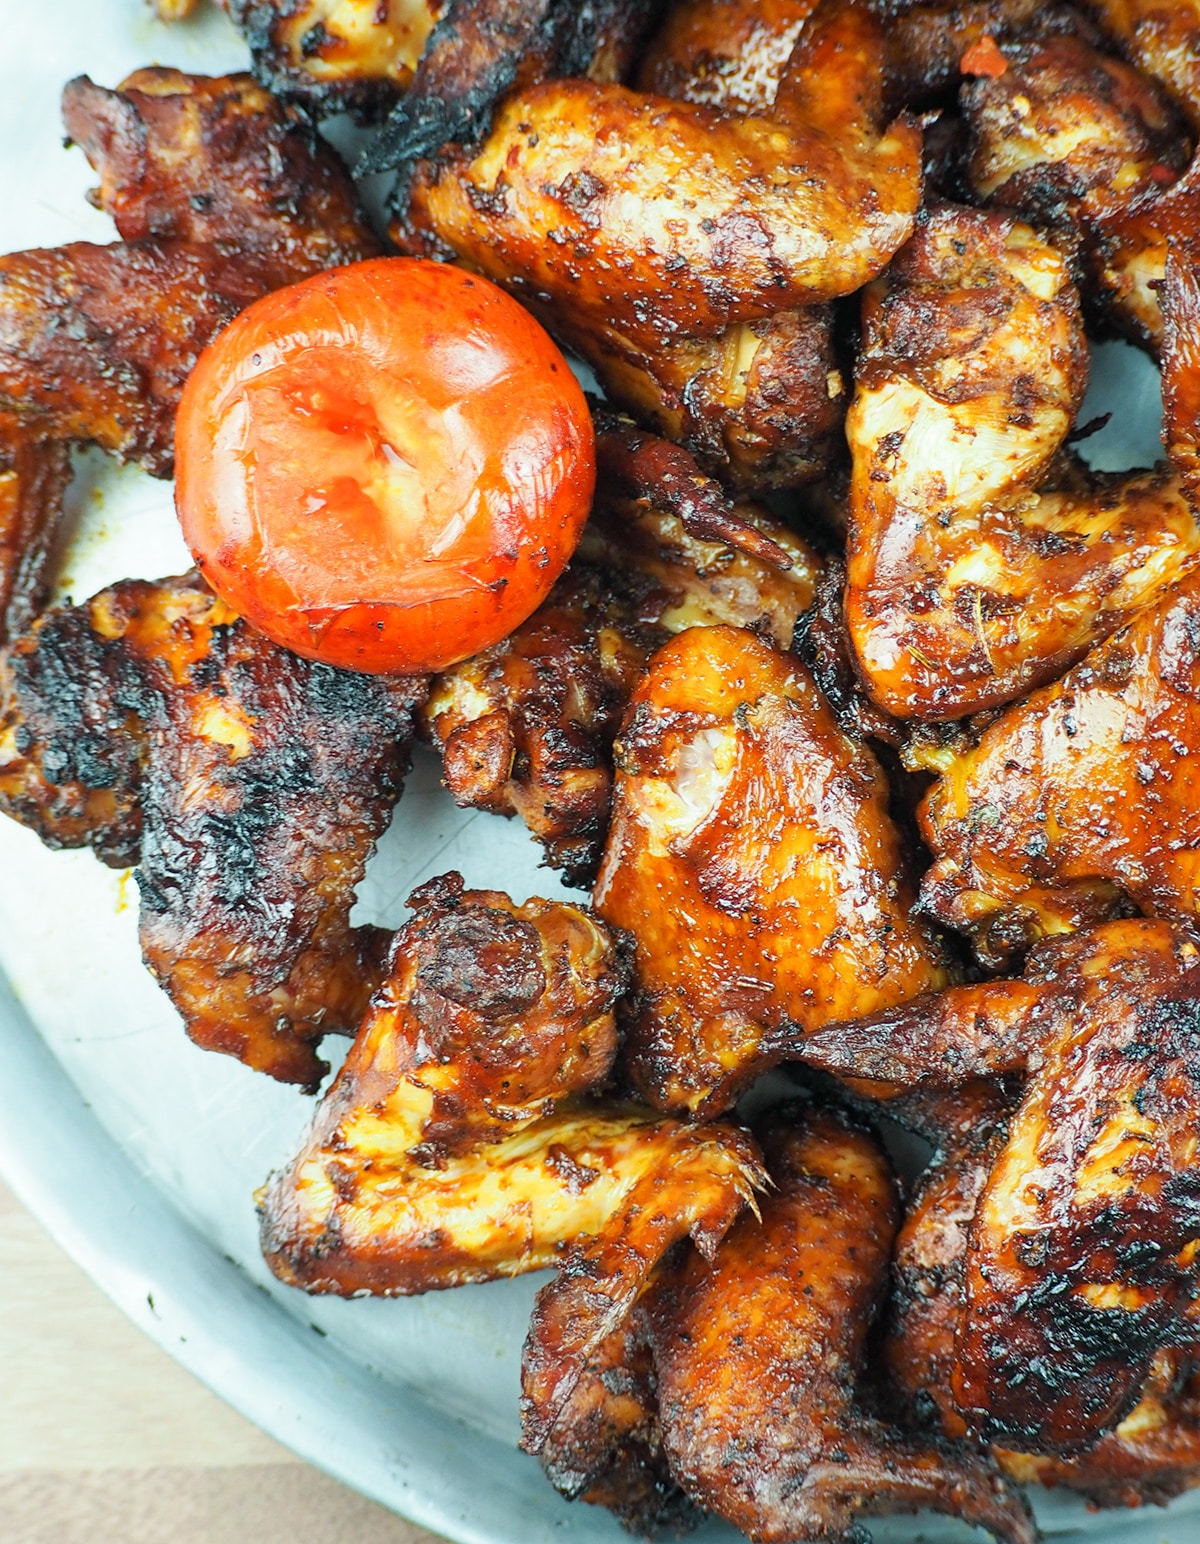 smoked chicken wings on baking sheet with smoked tomato